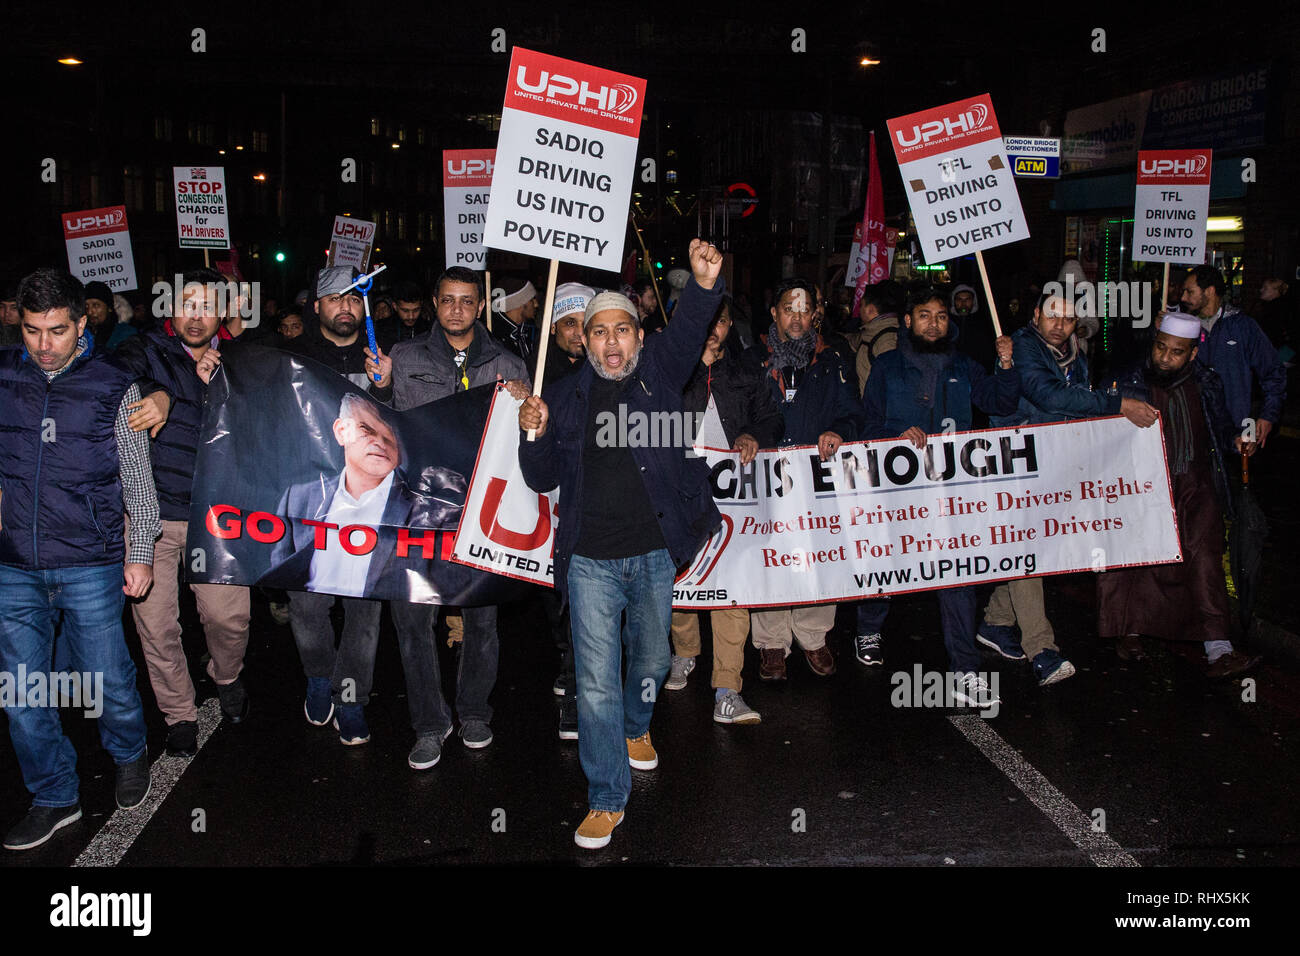 London, UK. 4th February, 2019. Hundreds of minicab drivers march around Southwark after having protested outside City Hall and having left their vehicles blocking London Bridge as part of a demonstration organised by the United Private Hire Drivers (UPHD) branch of the Independent Workers Union of Great Britain's (IWGB)  following the introduction in December of congestion charges for minicabs. Credit: Mark Kerrison/Alamy Live News - Stock Image